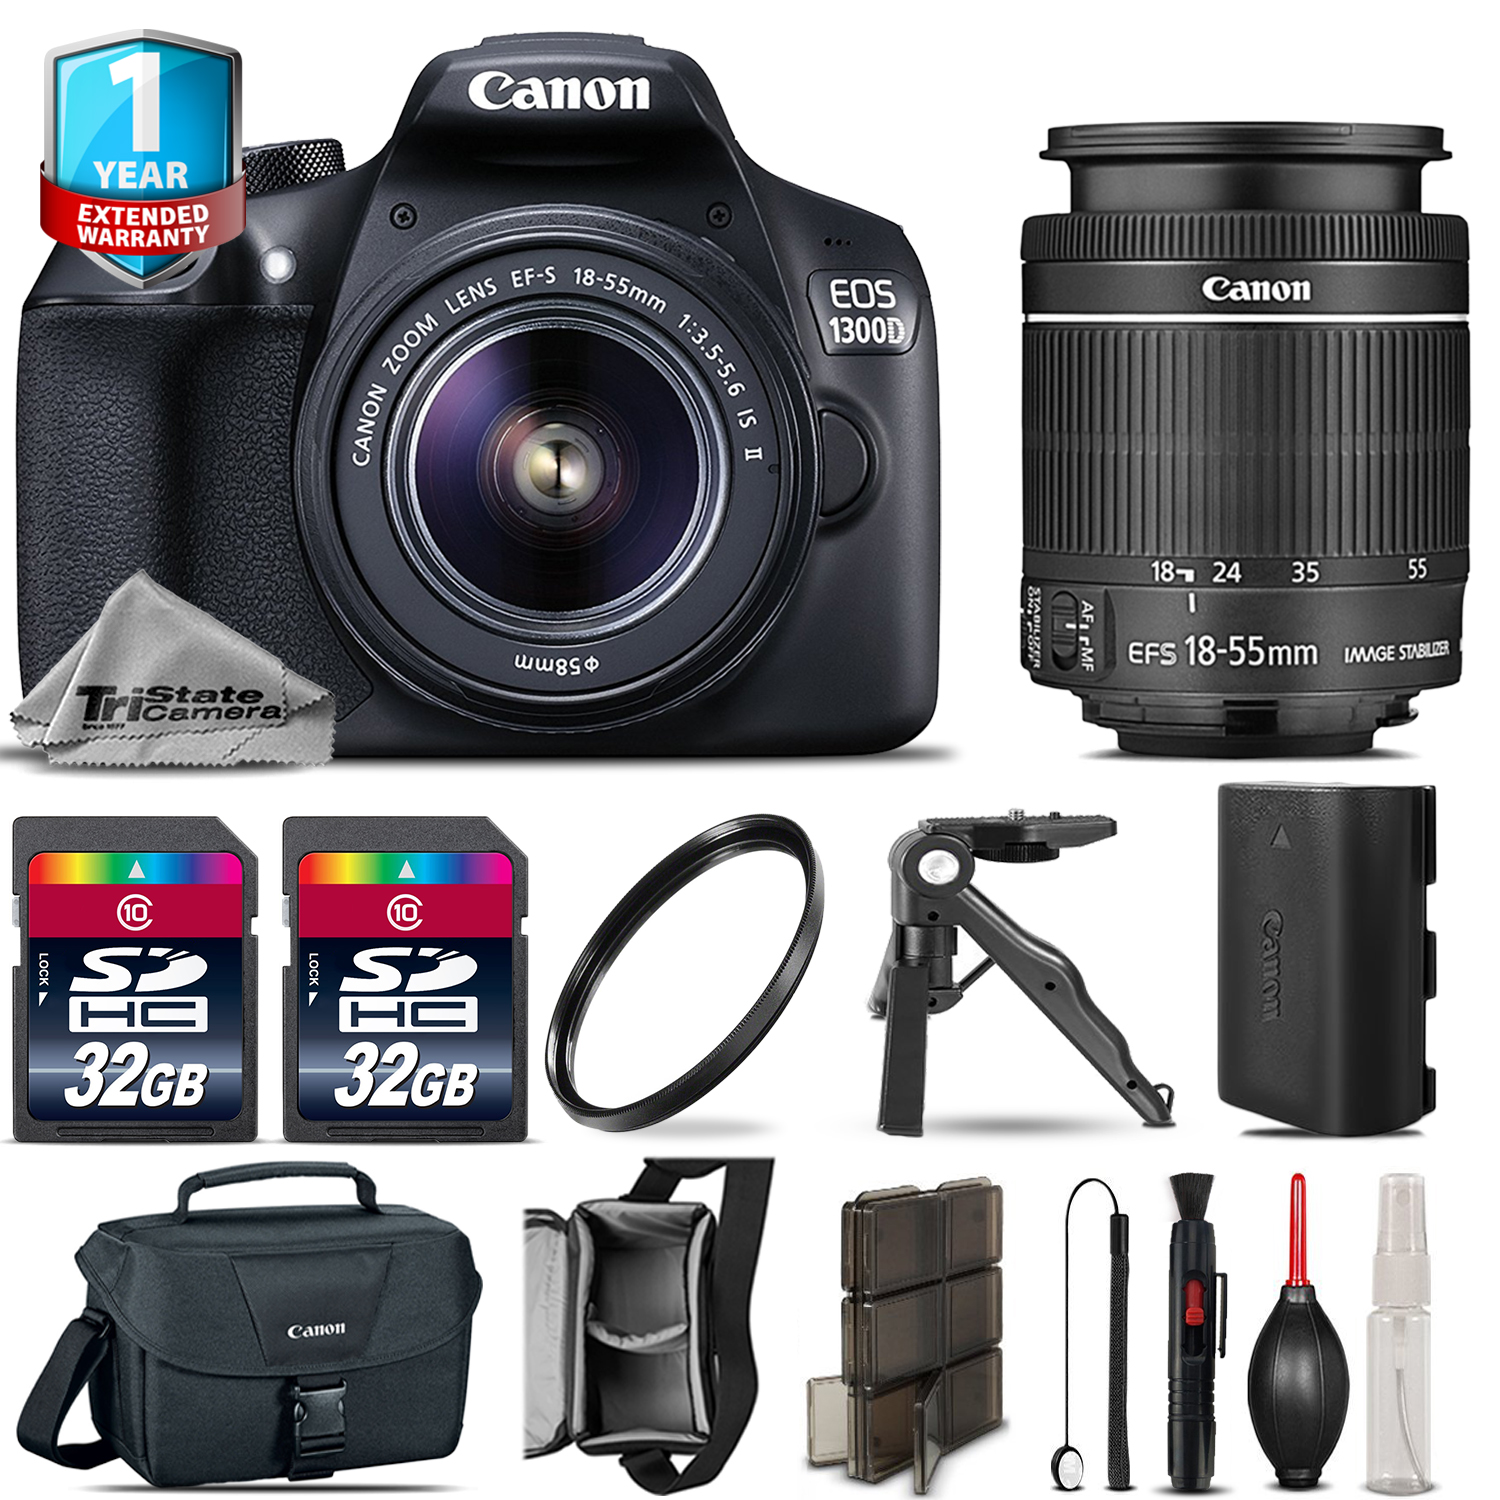 EOS Rebel 1300D / T6 DSLR Camera + 18-55mm IS + 1yr Warranty - 64GB Kit *FREE SHIPPING*